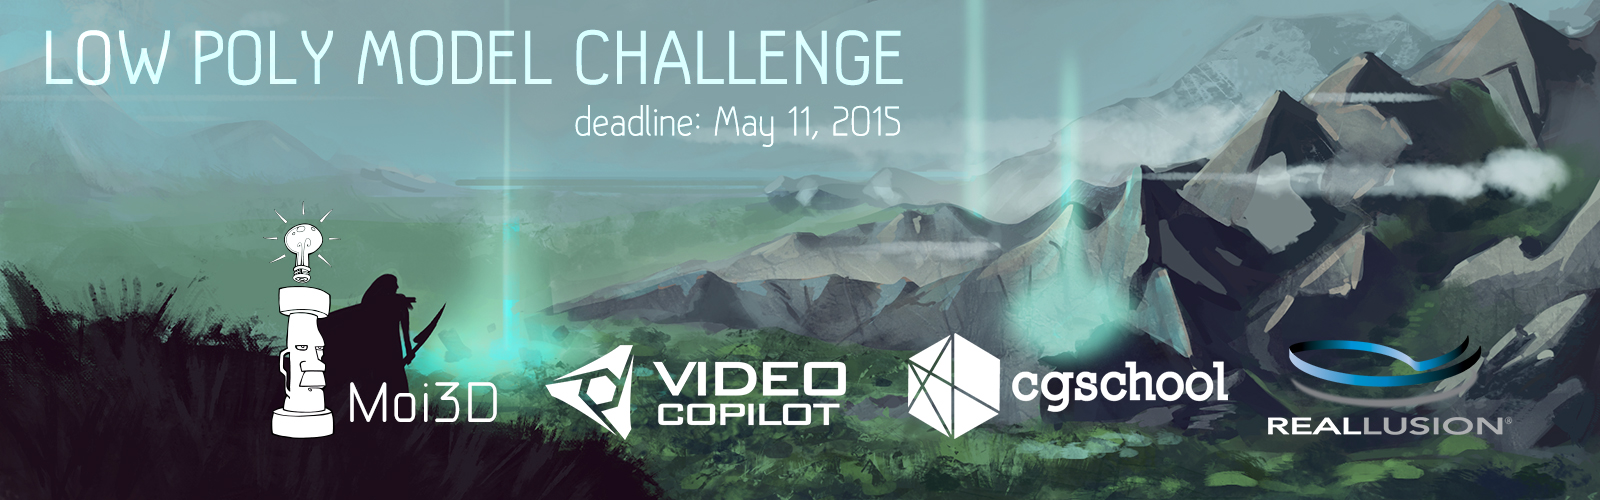 CG Low Poly Model Challenge | CGTrader